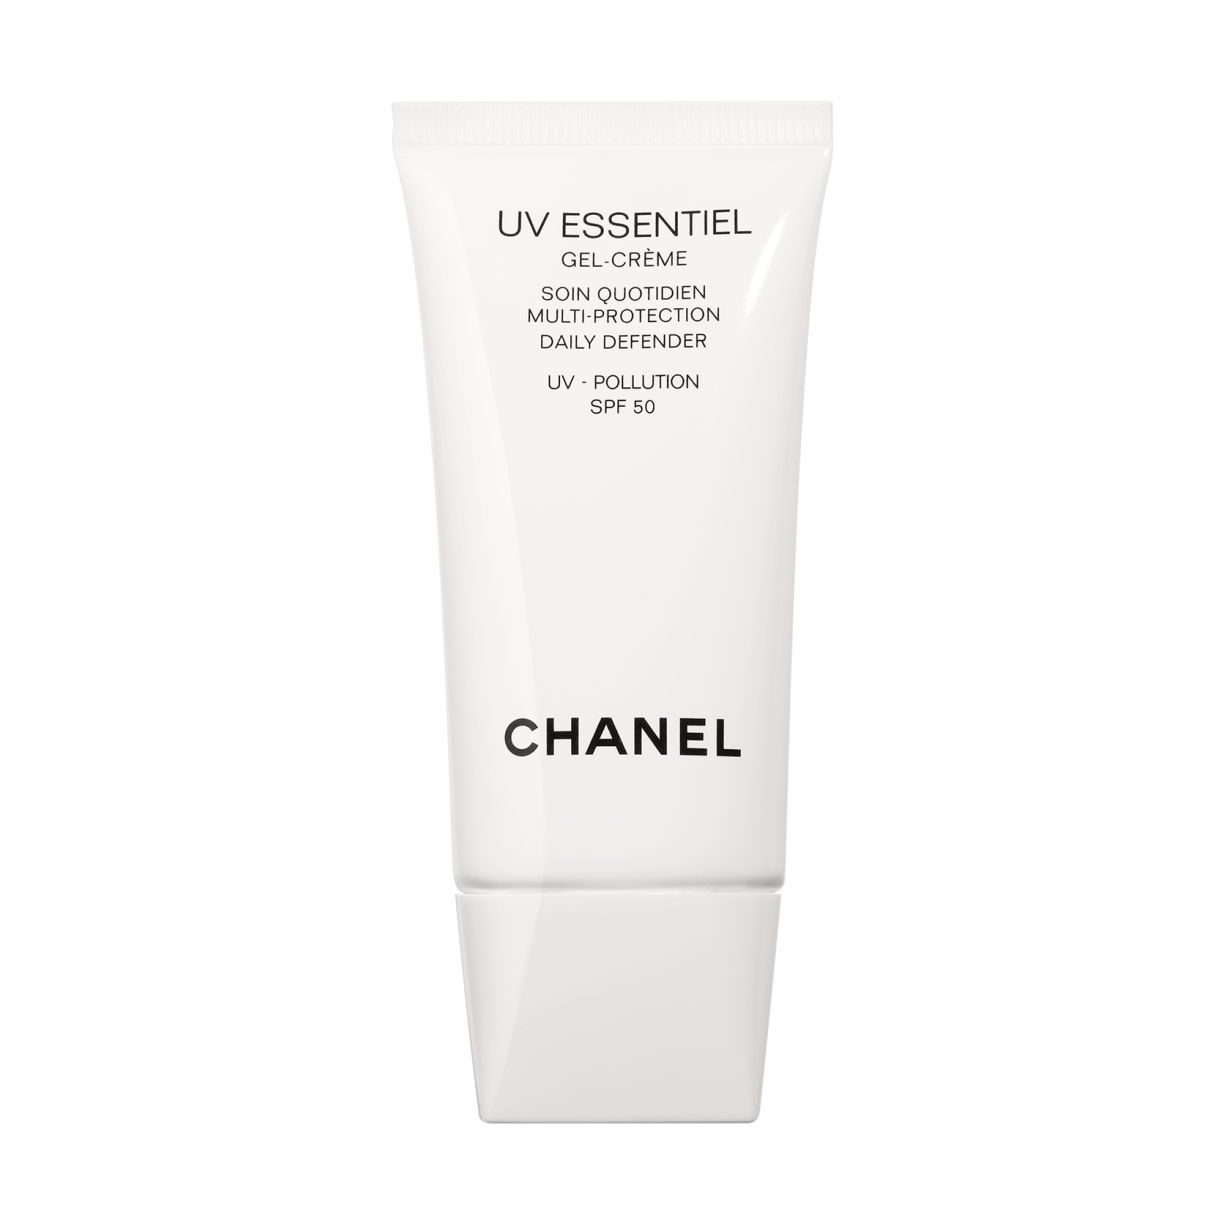 UV ESSENTIEL GEL CRÈME MULTI-PROTECTION DAILY DEFENDER UV - POLLUTION SPF50